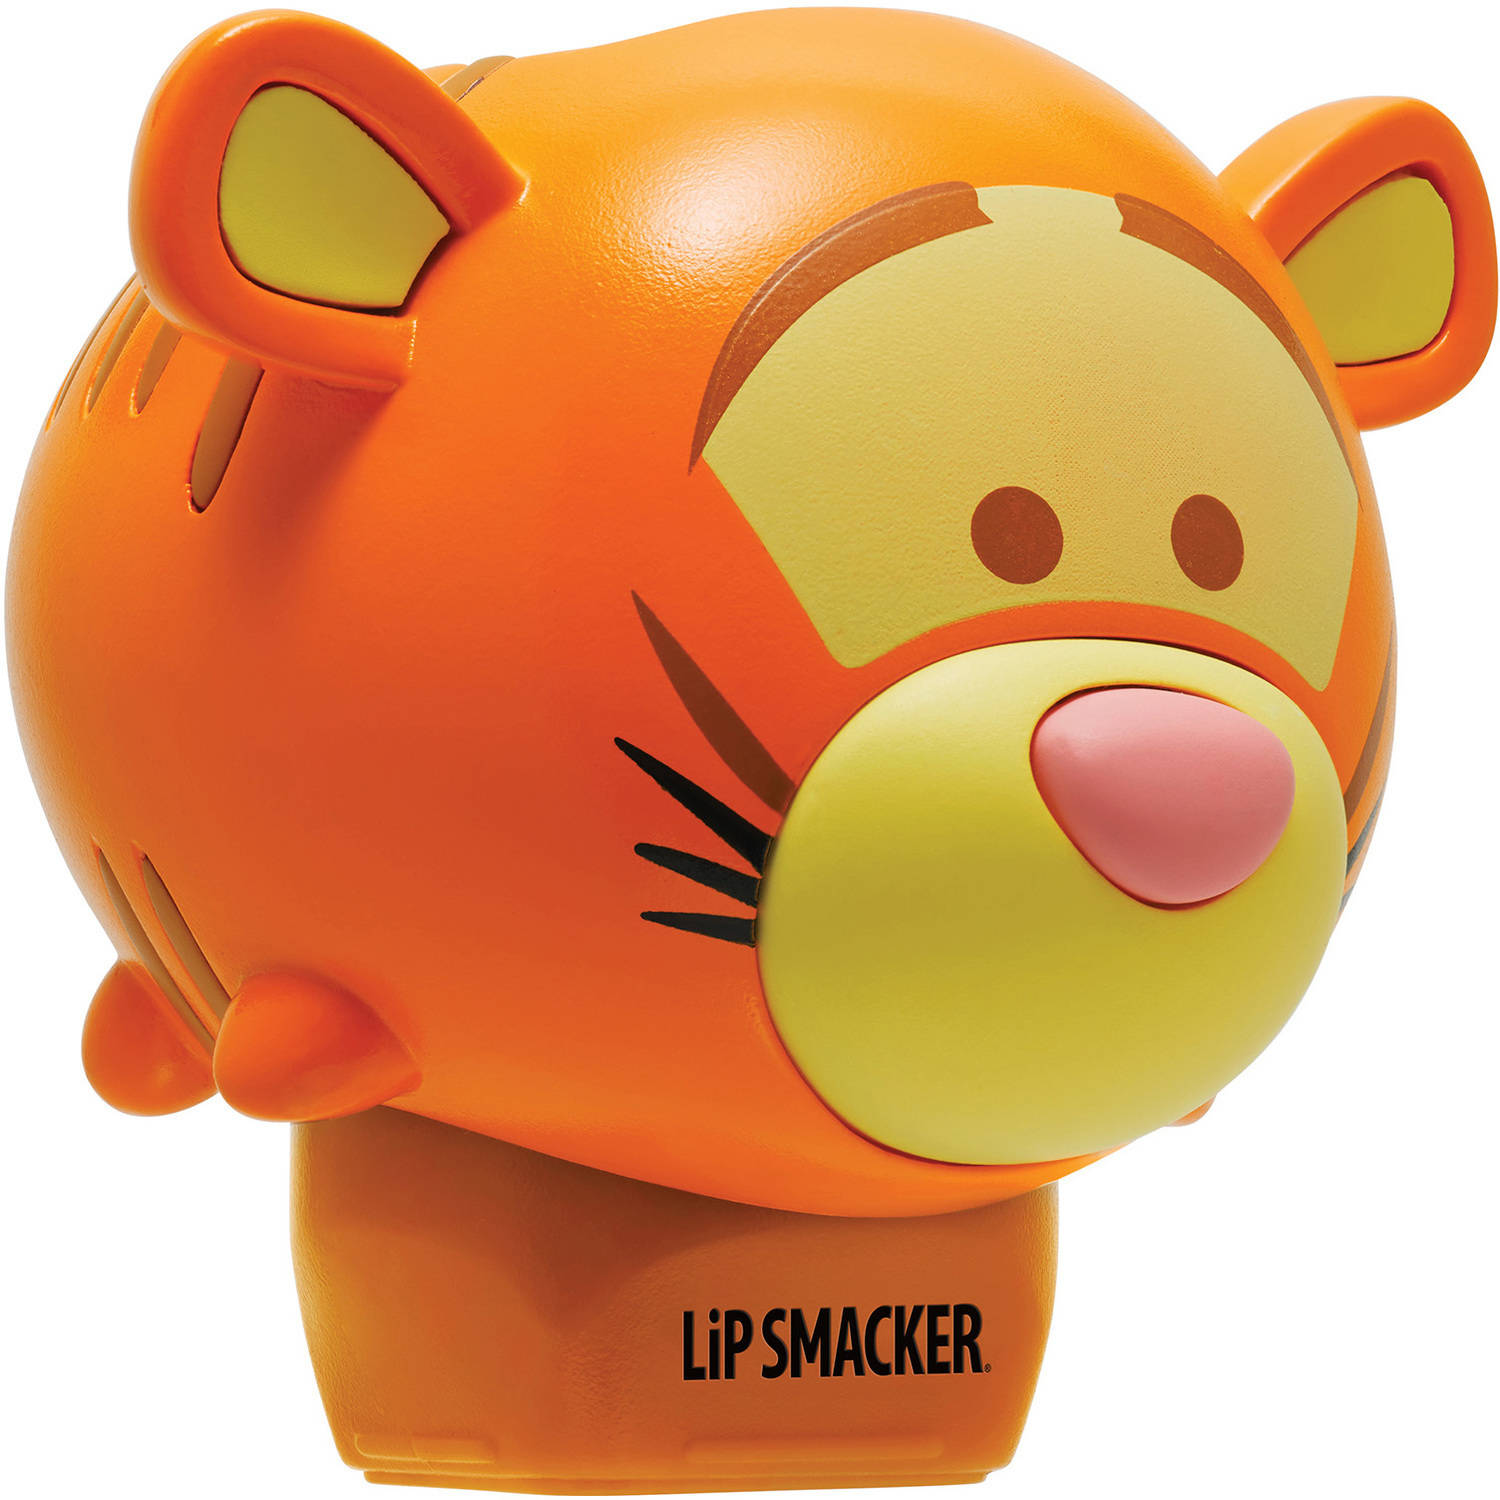 Lip Smacker Disney Tsum Tsum - Tigger Bouncy Bubble Gum